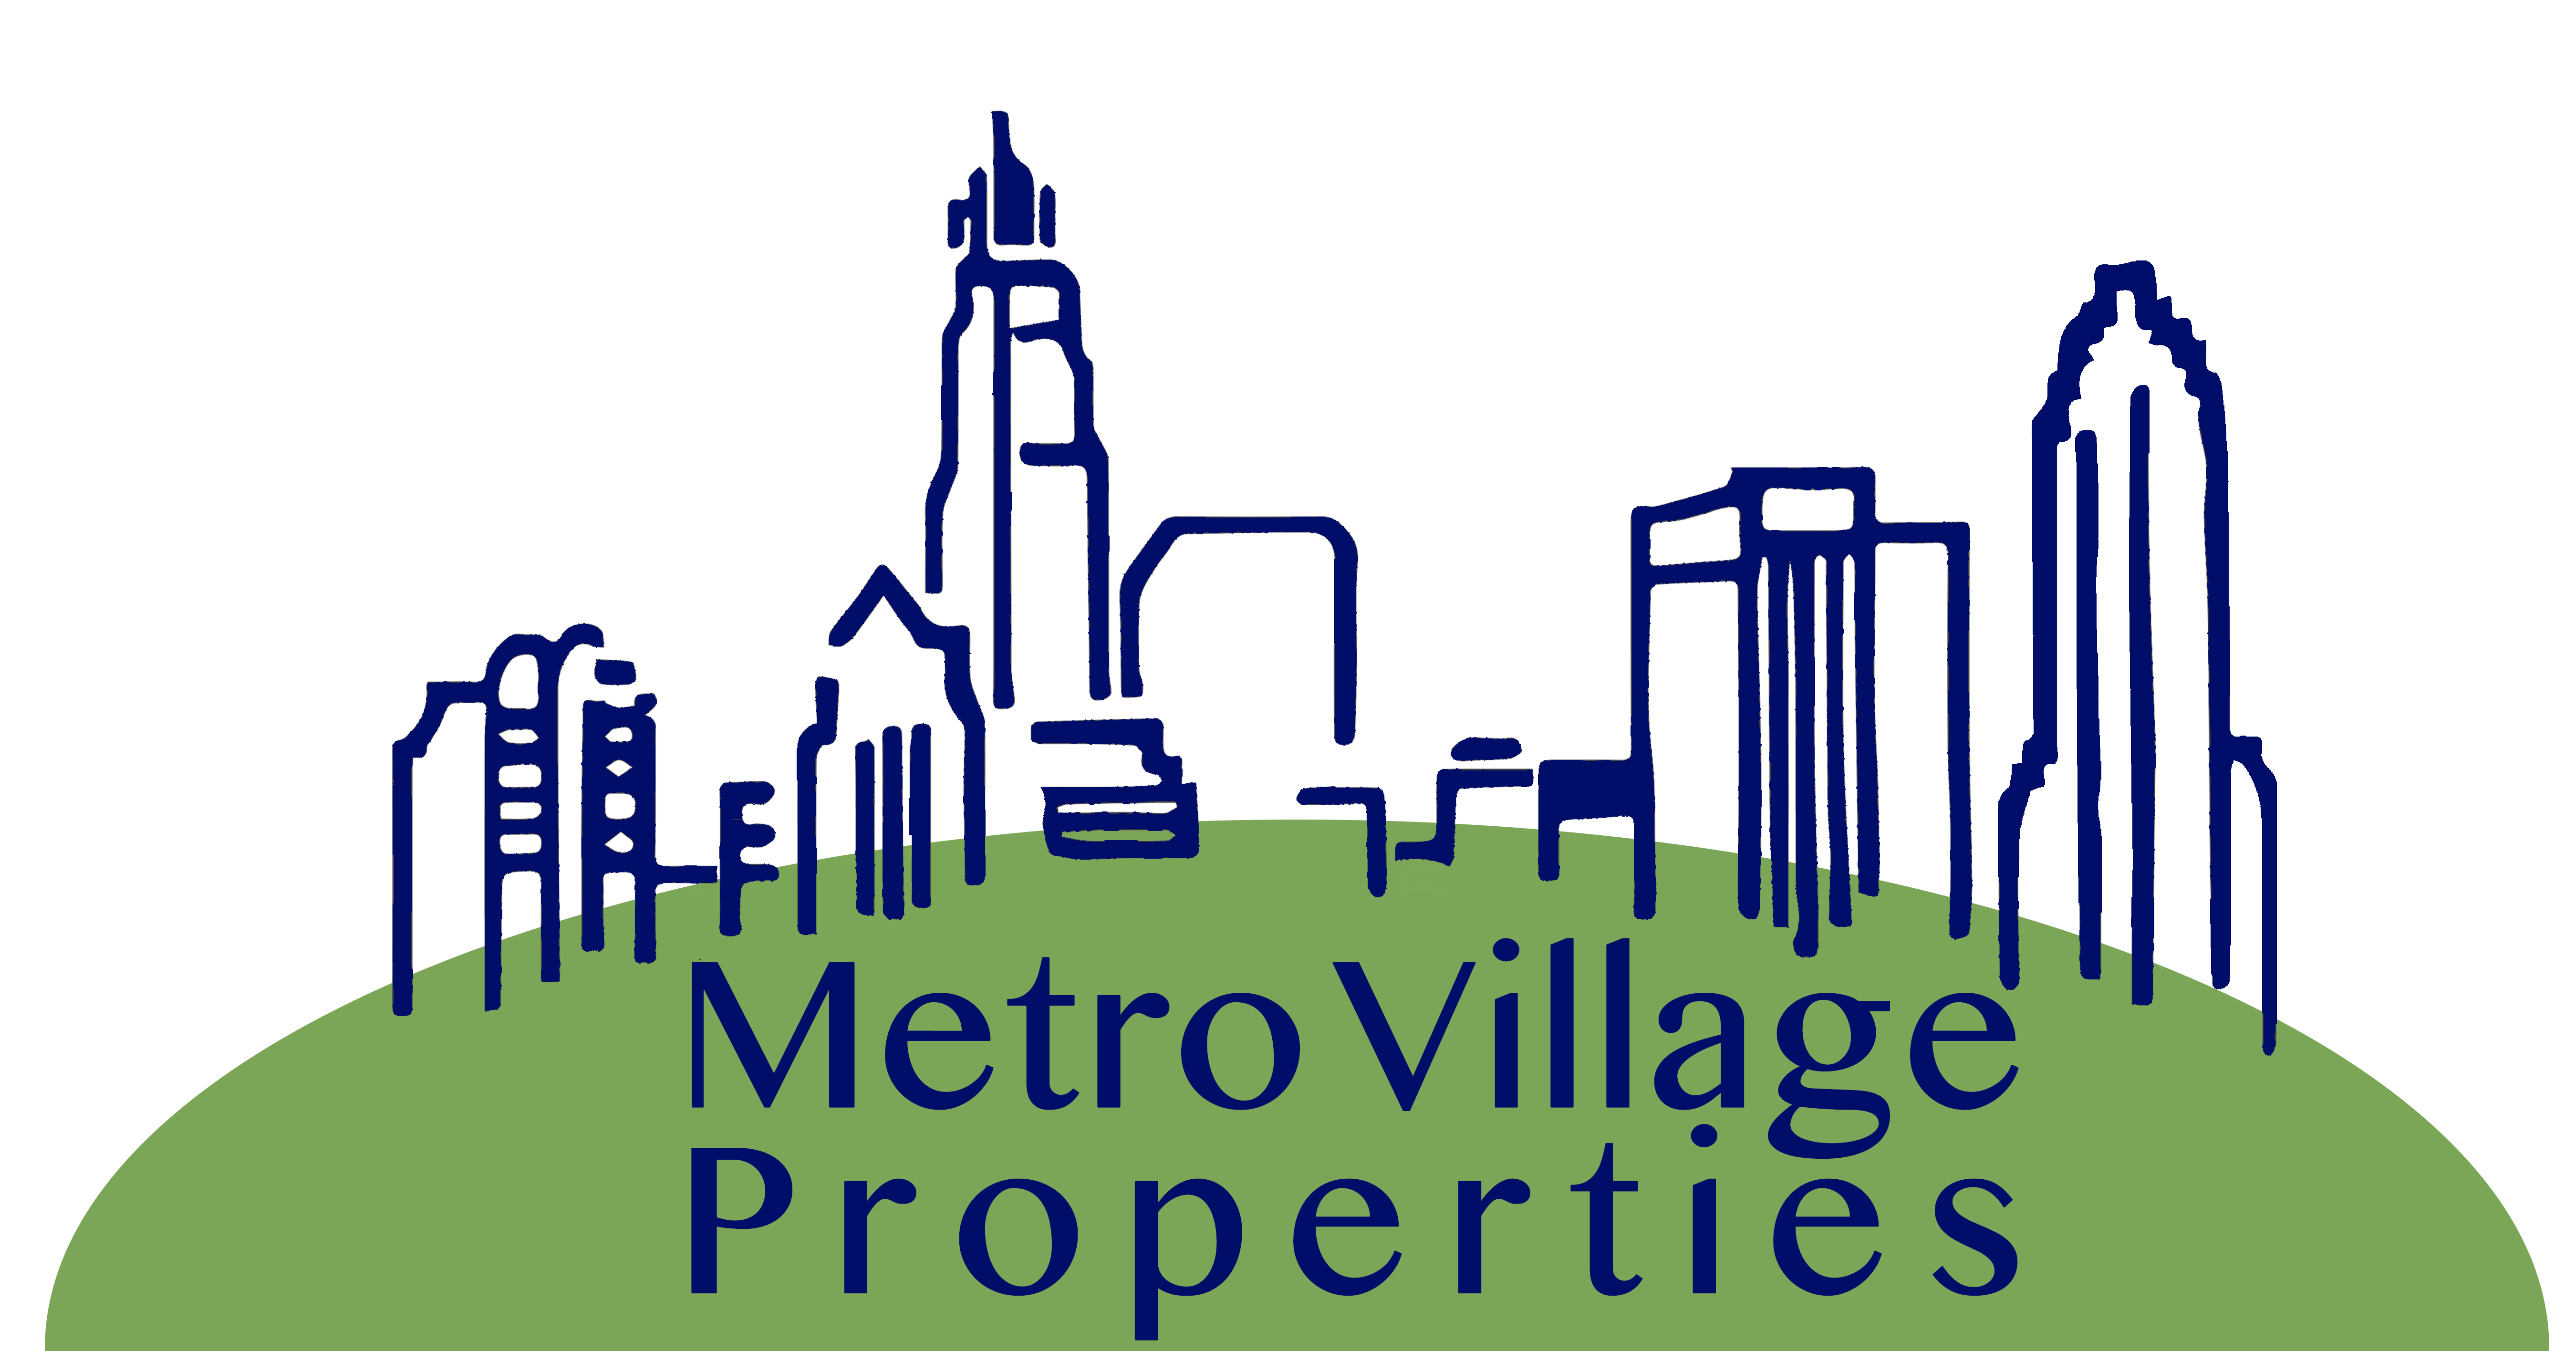 Metro village properties logo redesign your marketing hand a fresh logo for realty firm metro village properties by your marketing hand altavistaventures Choice Image